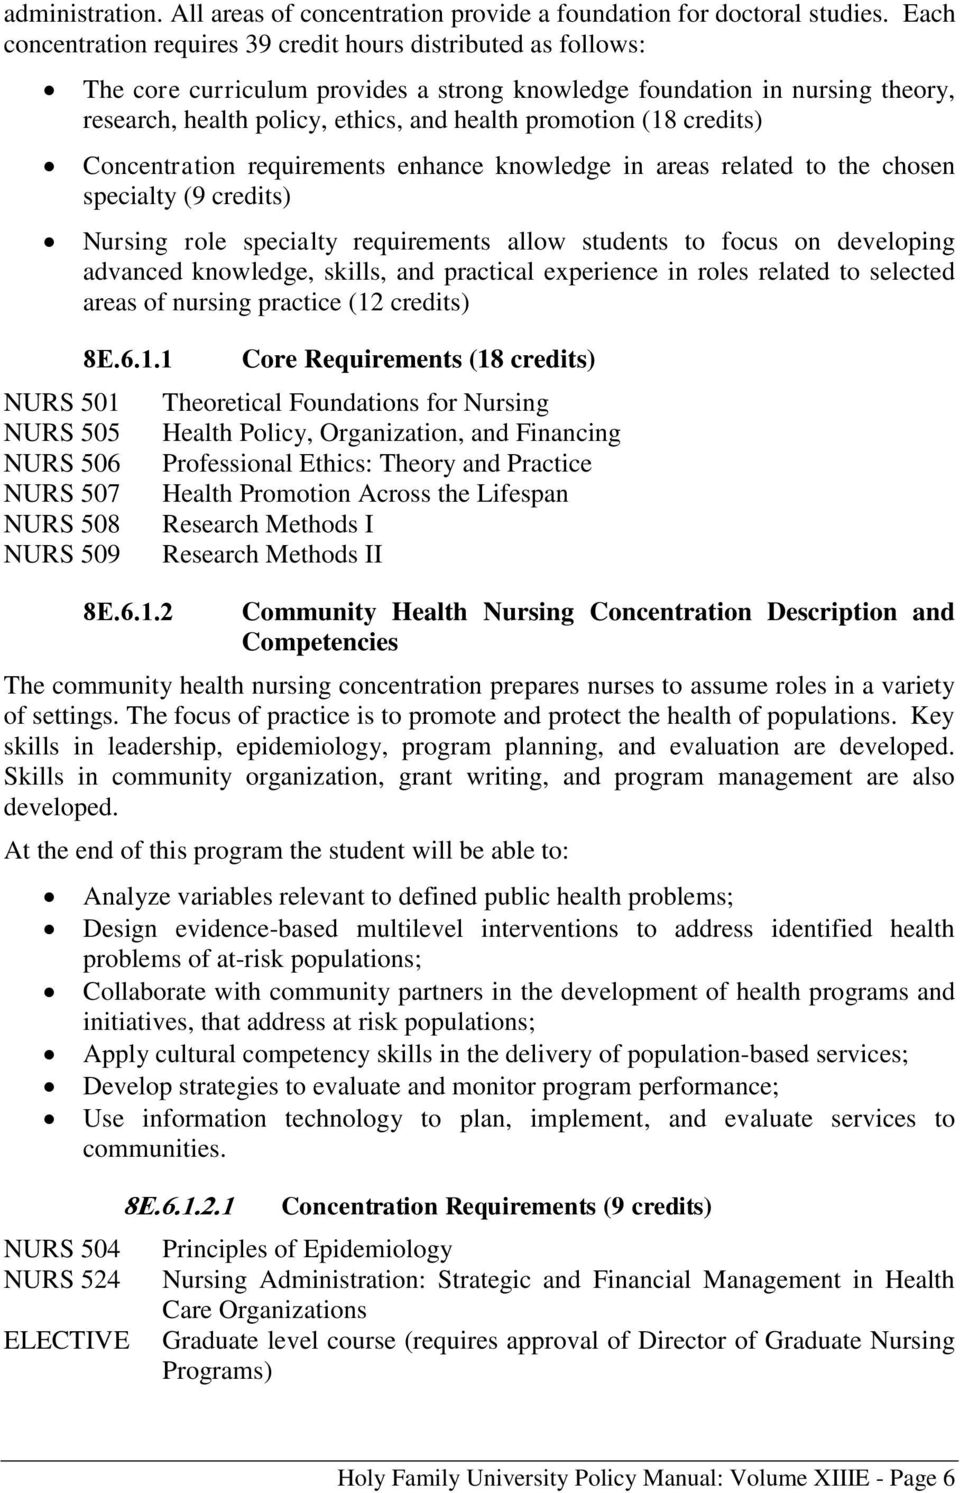 research, health policy, ethics, and health promotion (18 credits) Concentration requirements enhance knowledge in areas related to the chosen specialty (9 credits) Nursing role specialty